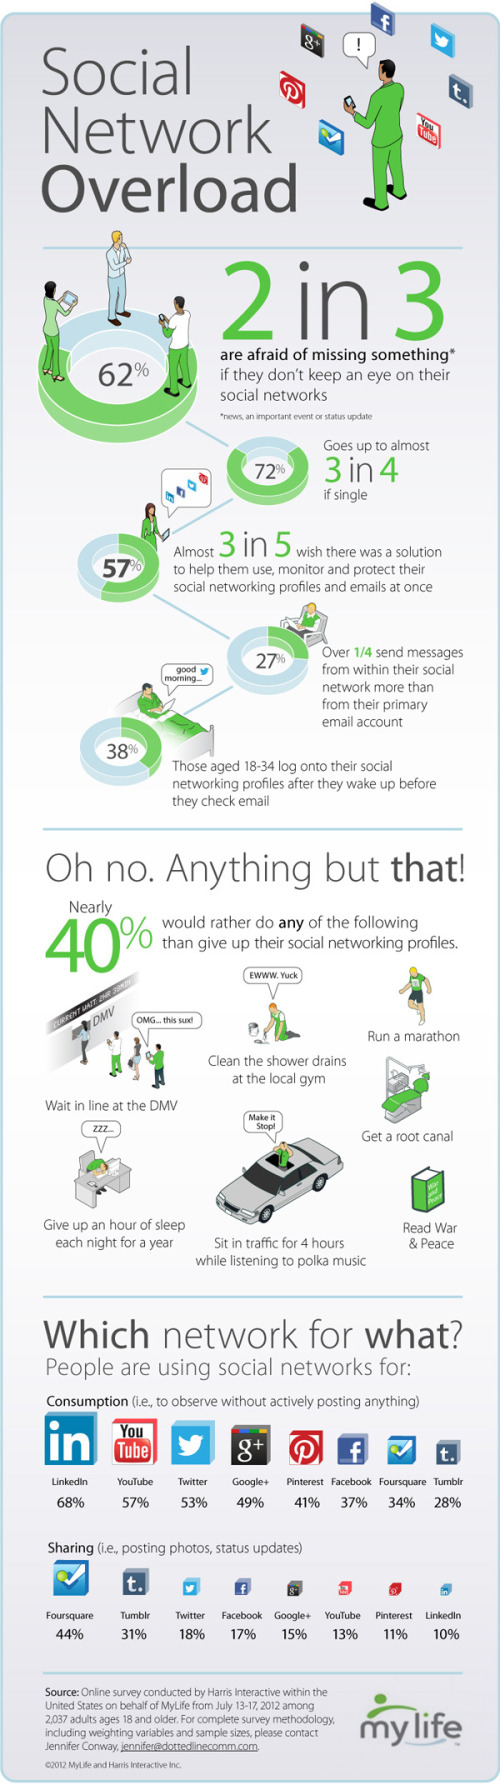 Social Network Overload infographic